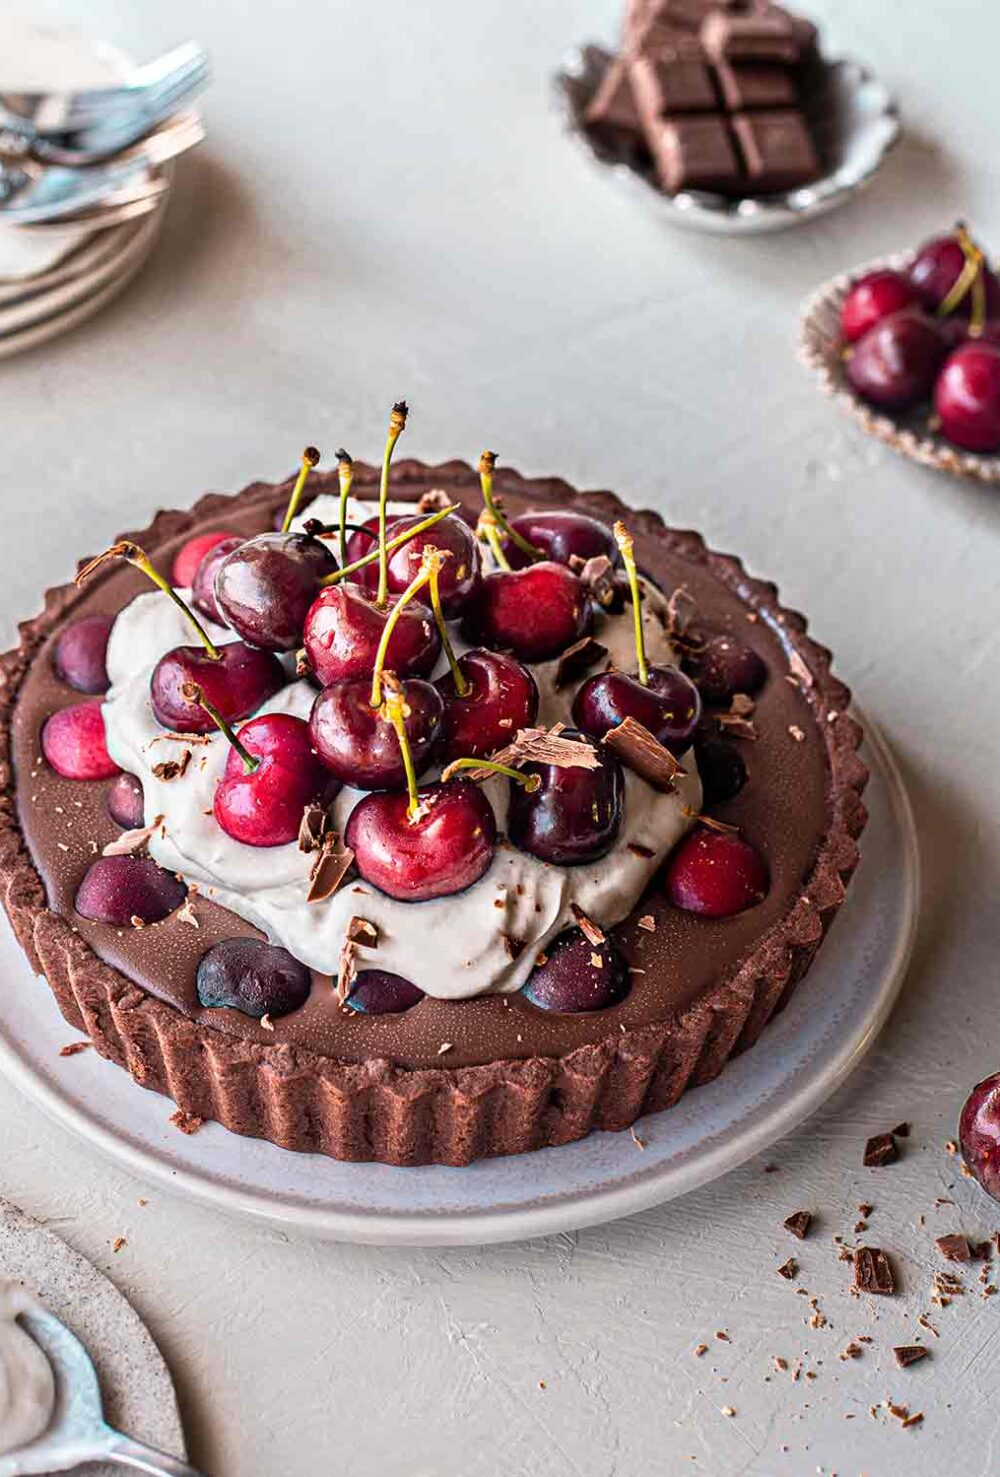 Vegan Blackforest tart with a chocolate base, ganache filling, coconut cream topping and lots of cherries on top. Tart is on plate surrounded by more fresh cherries and serving plates